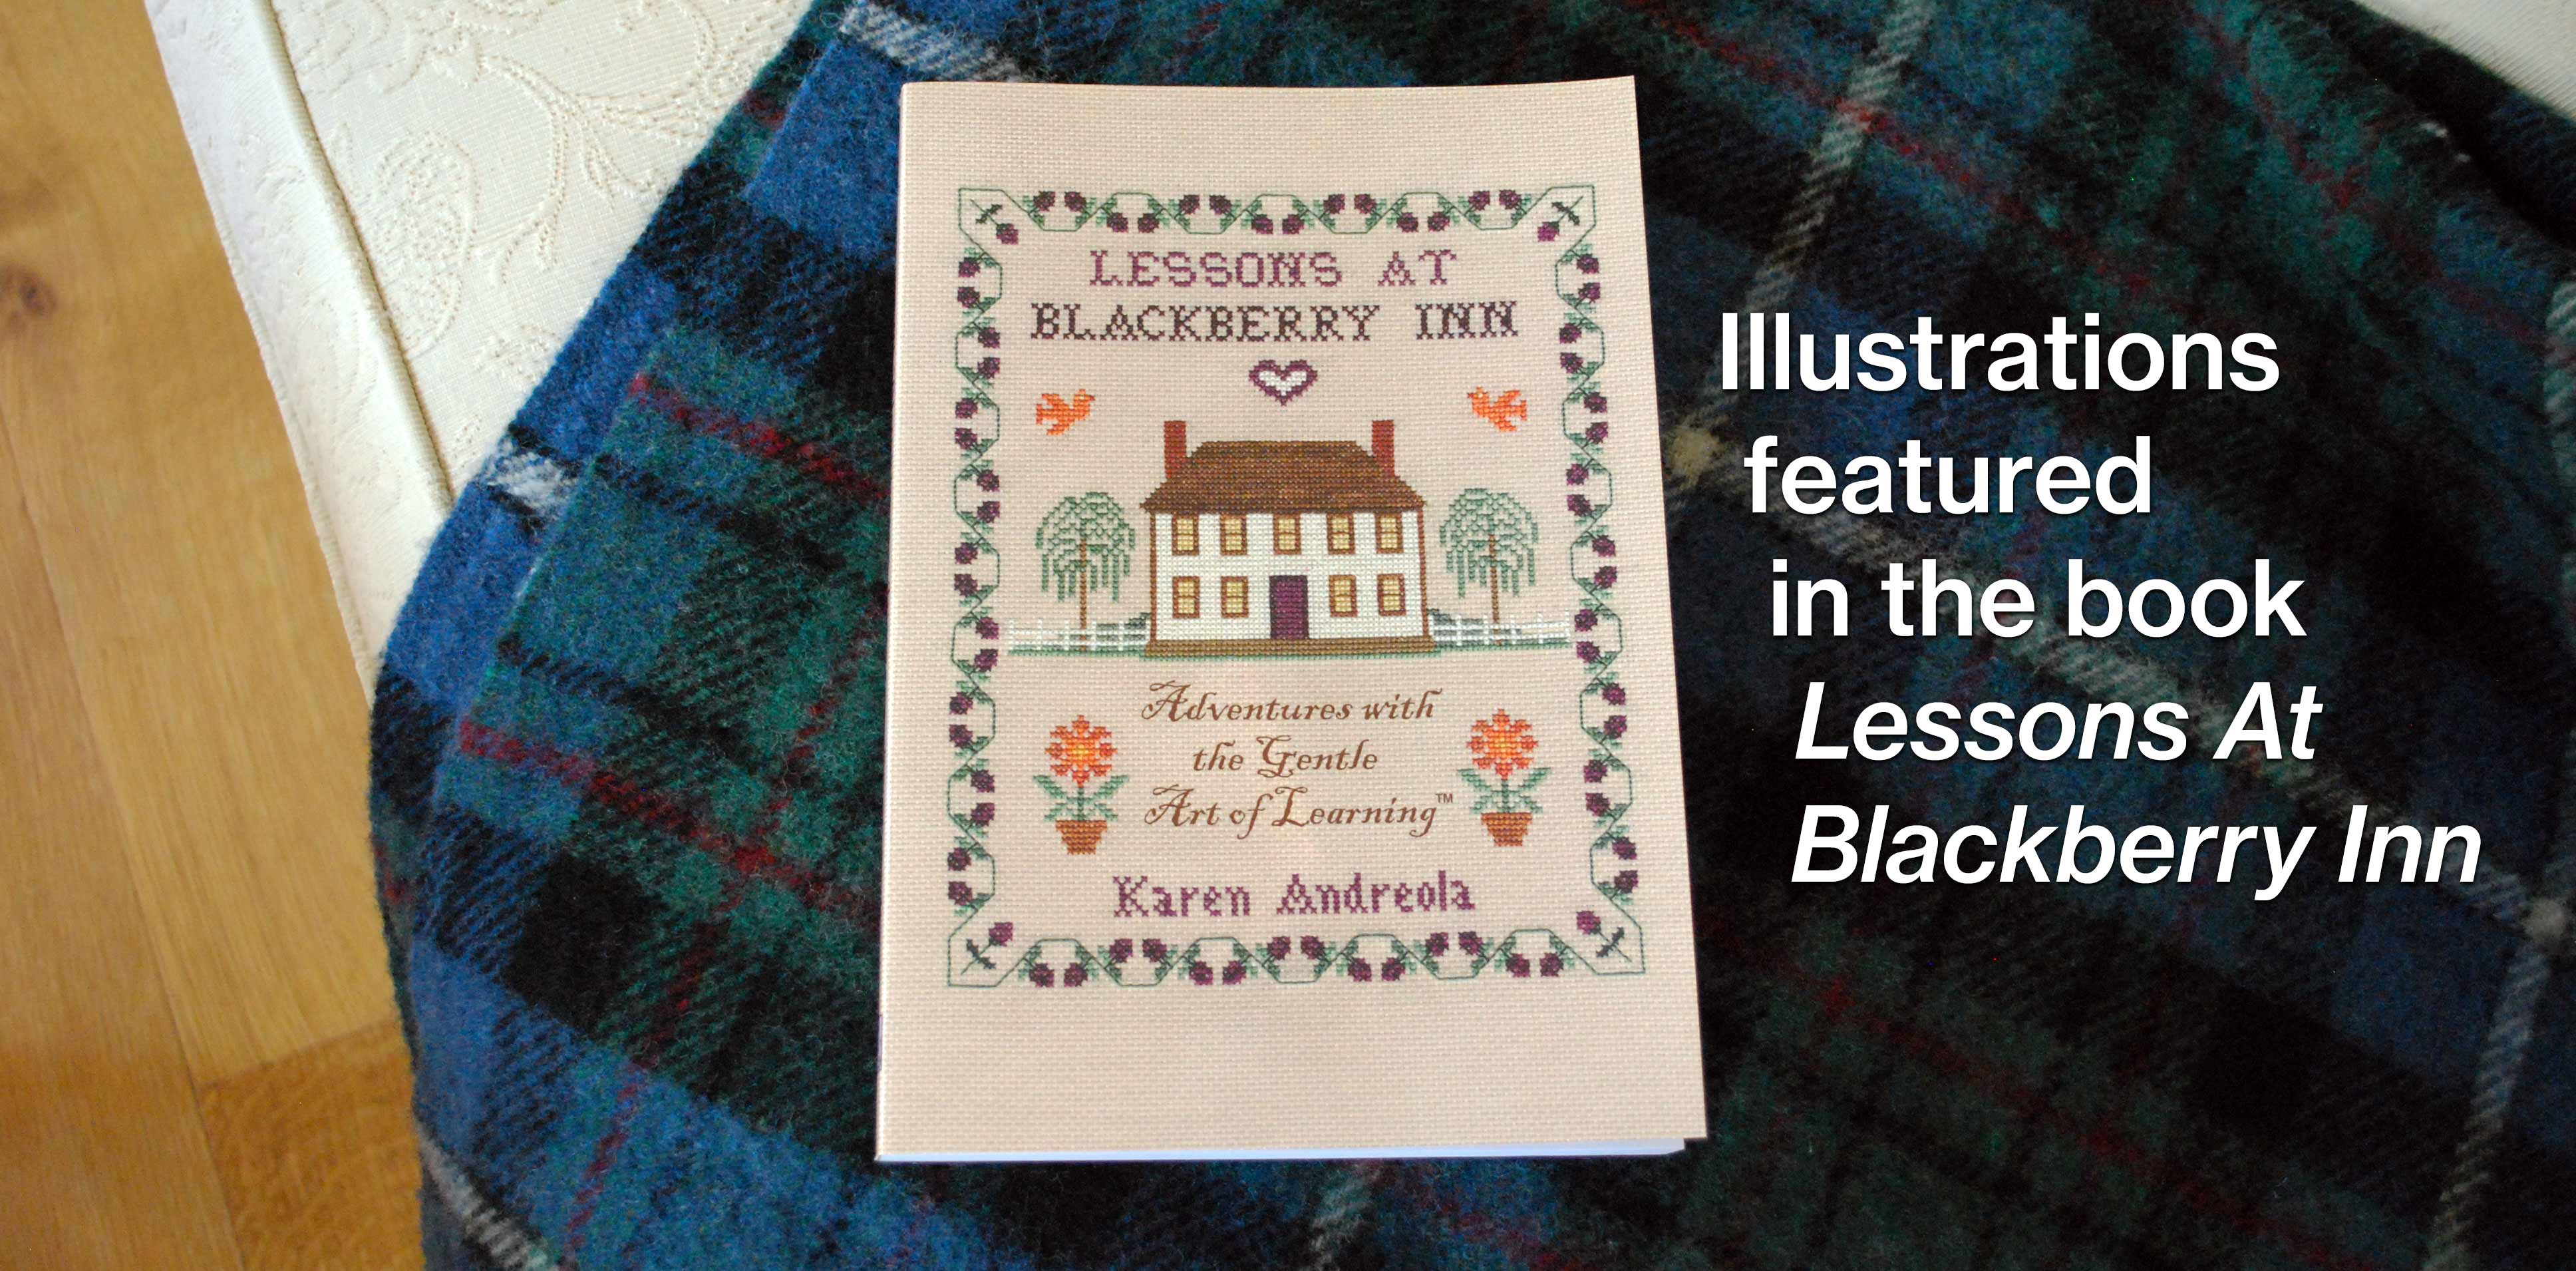 Illustrations featured in the book Lessons At Blackberry Inn